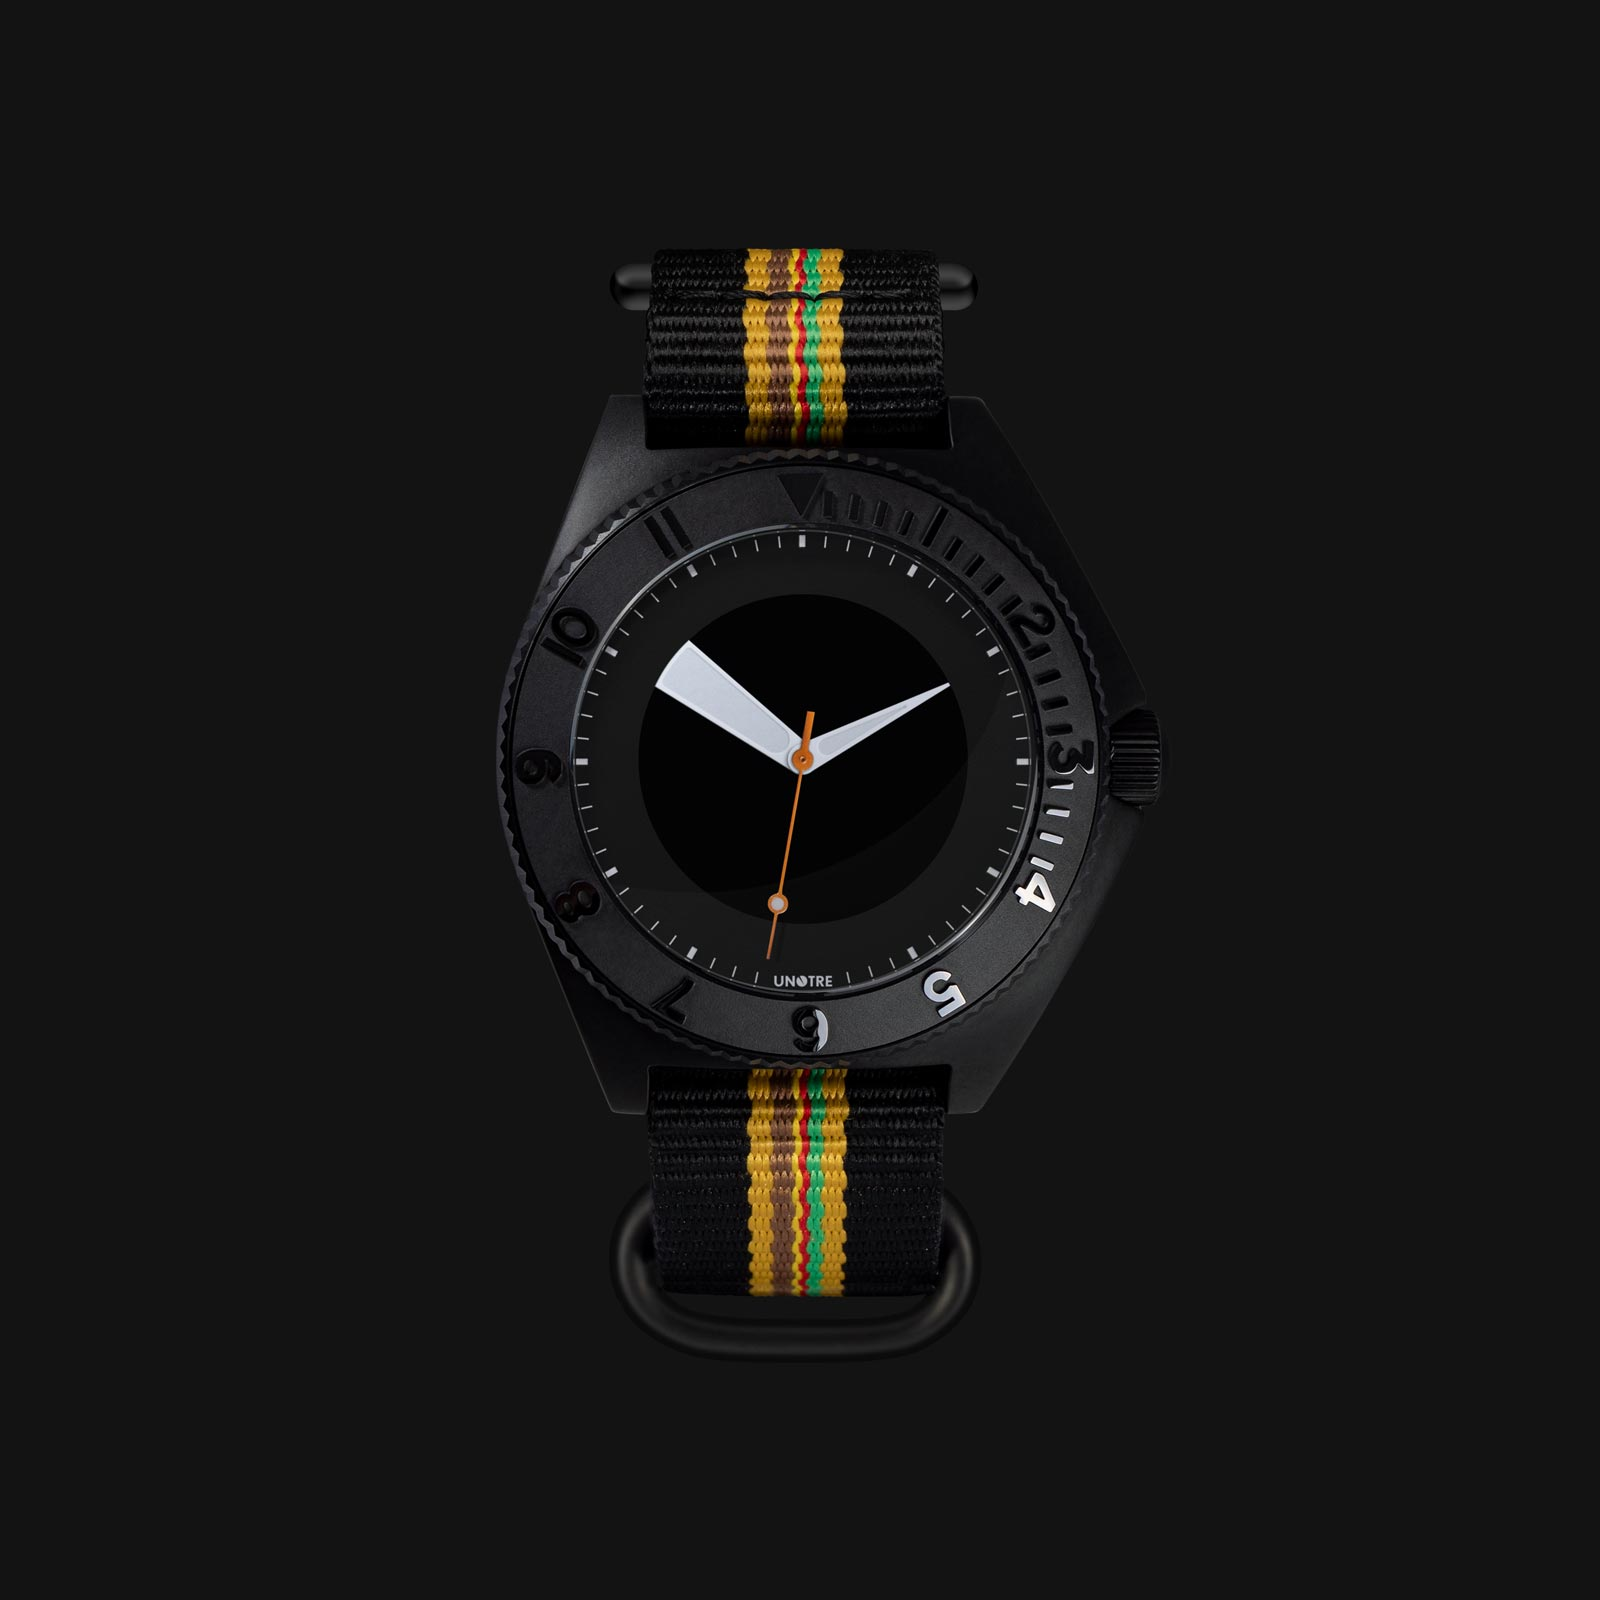 Electronic watch UNOTRE - Black version